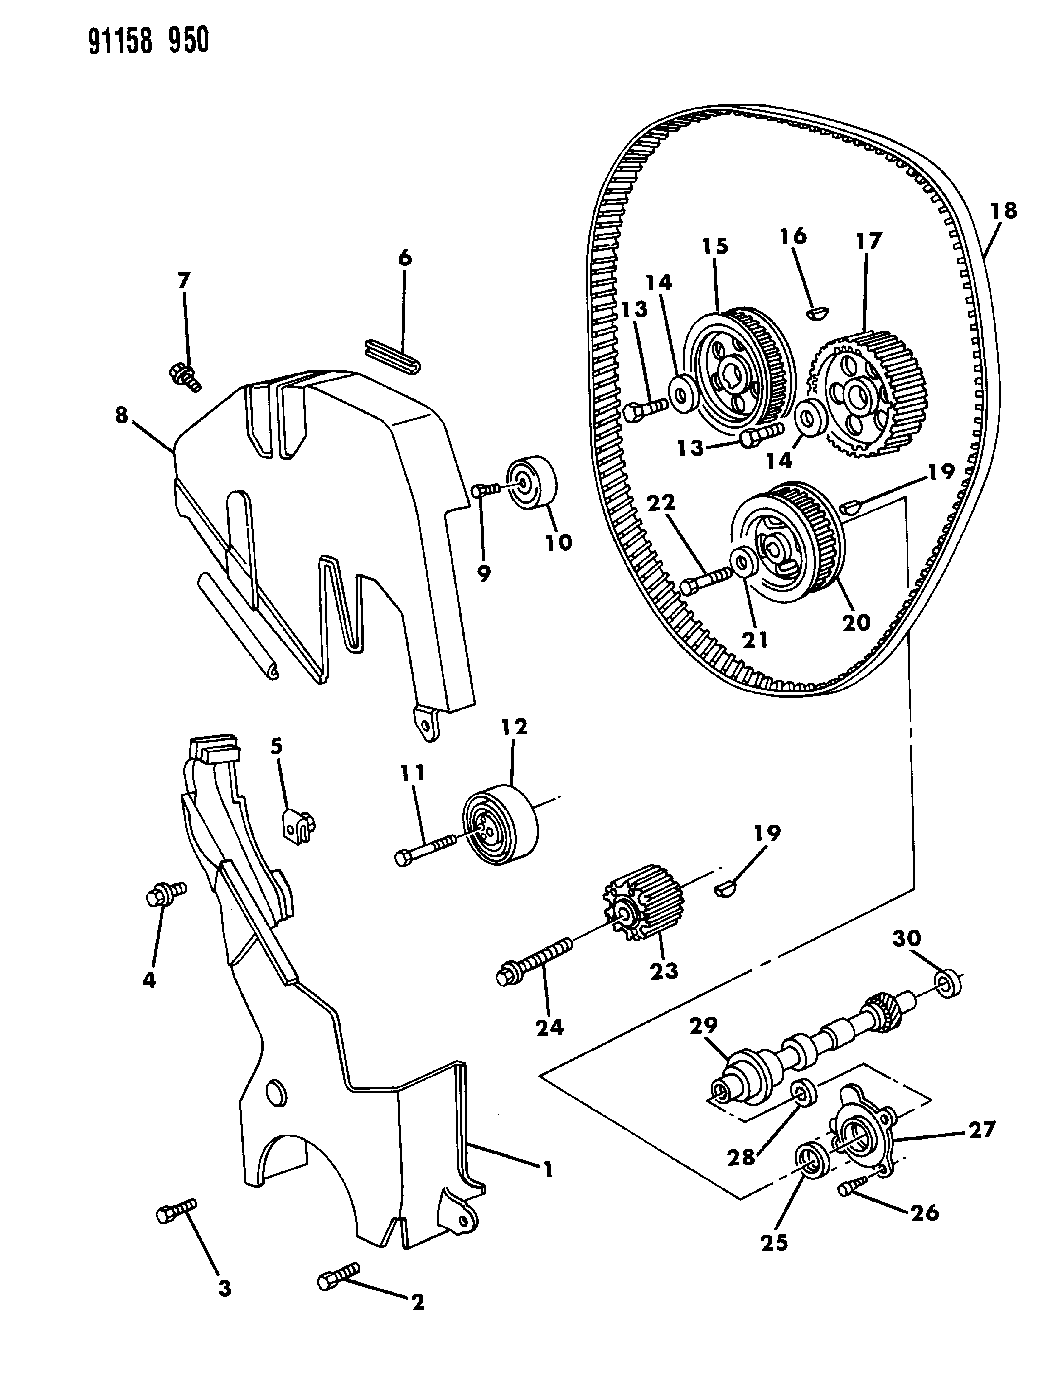 Lm 3393 Fig 35 Engine Wiring Schematic199495 Town Country Caravan And Download Diagram